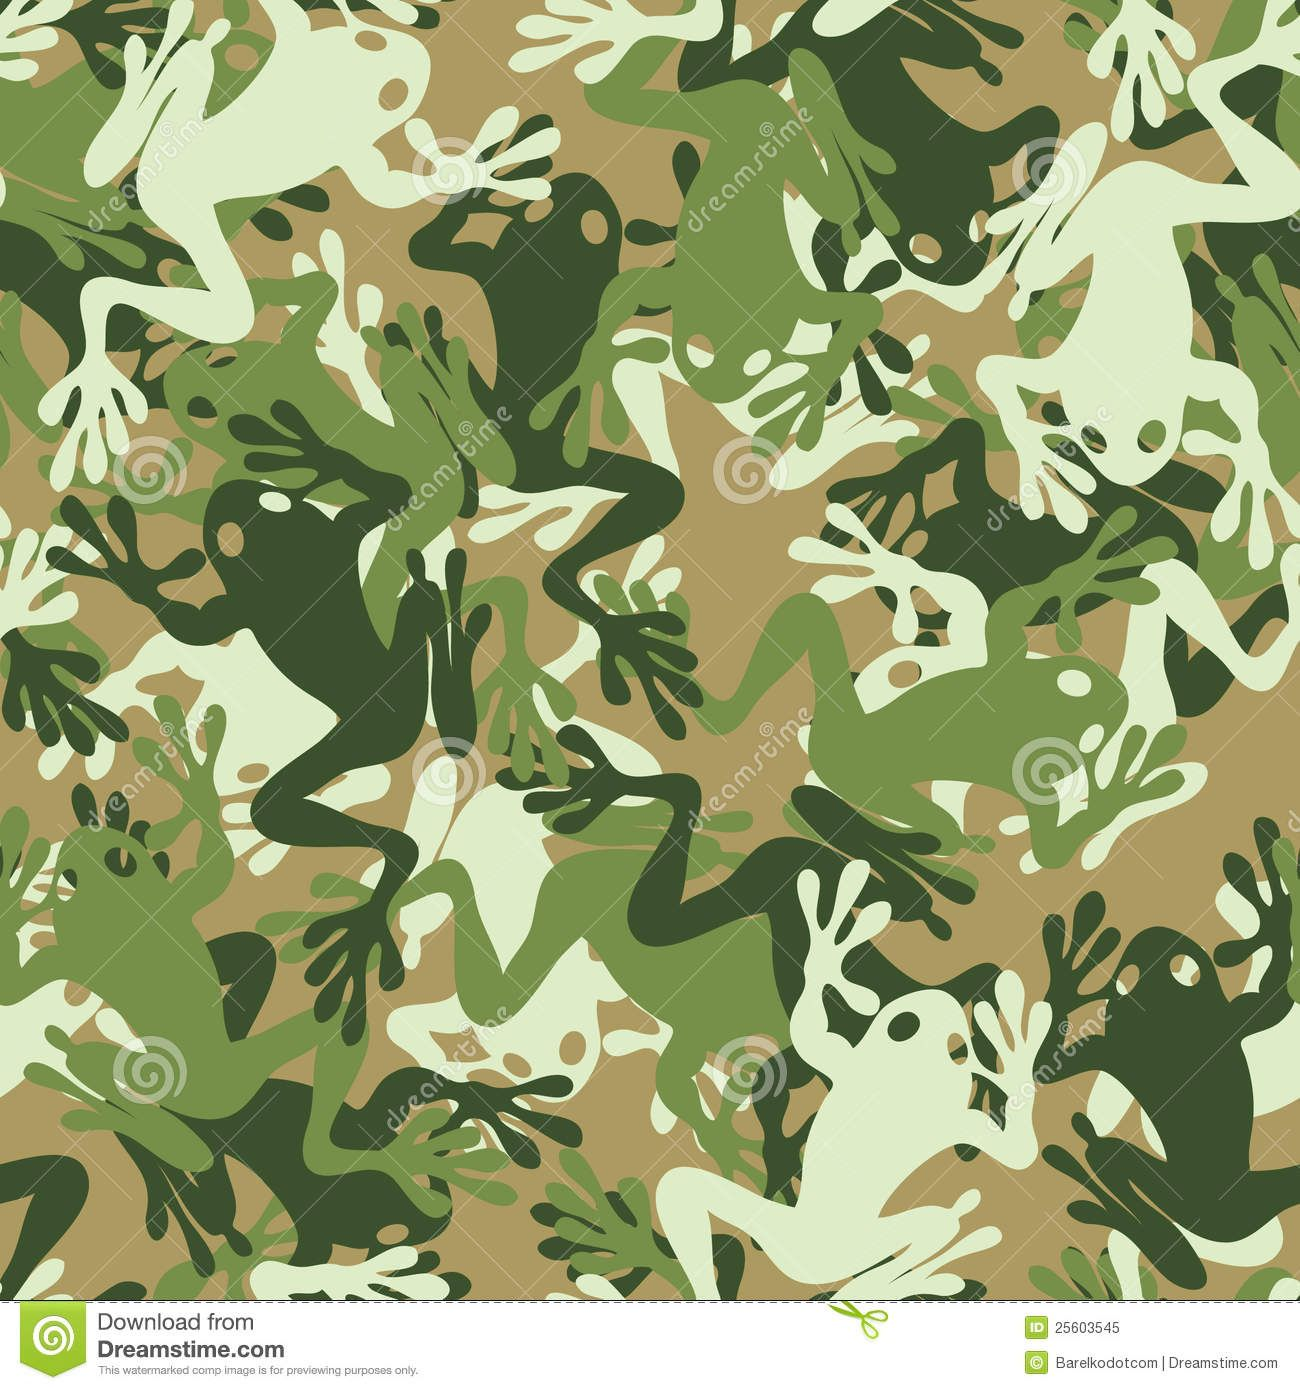 Seamless Frog Camouflage Pattern Download From Over 27 Million